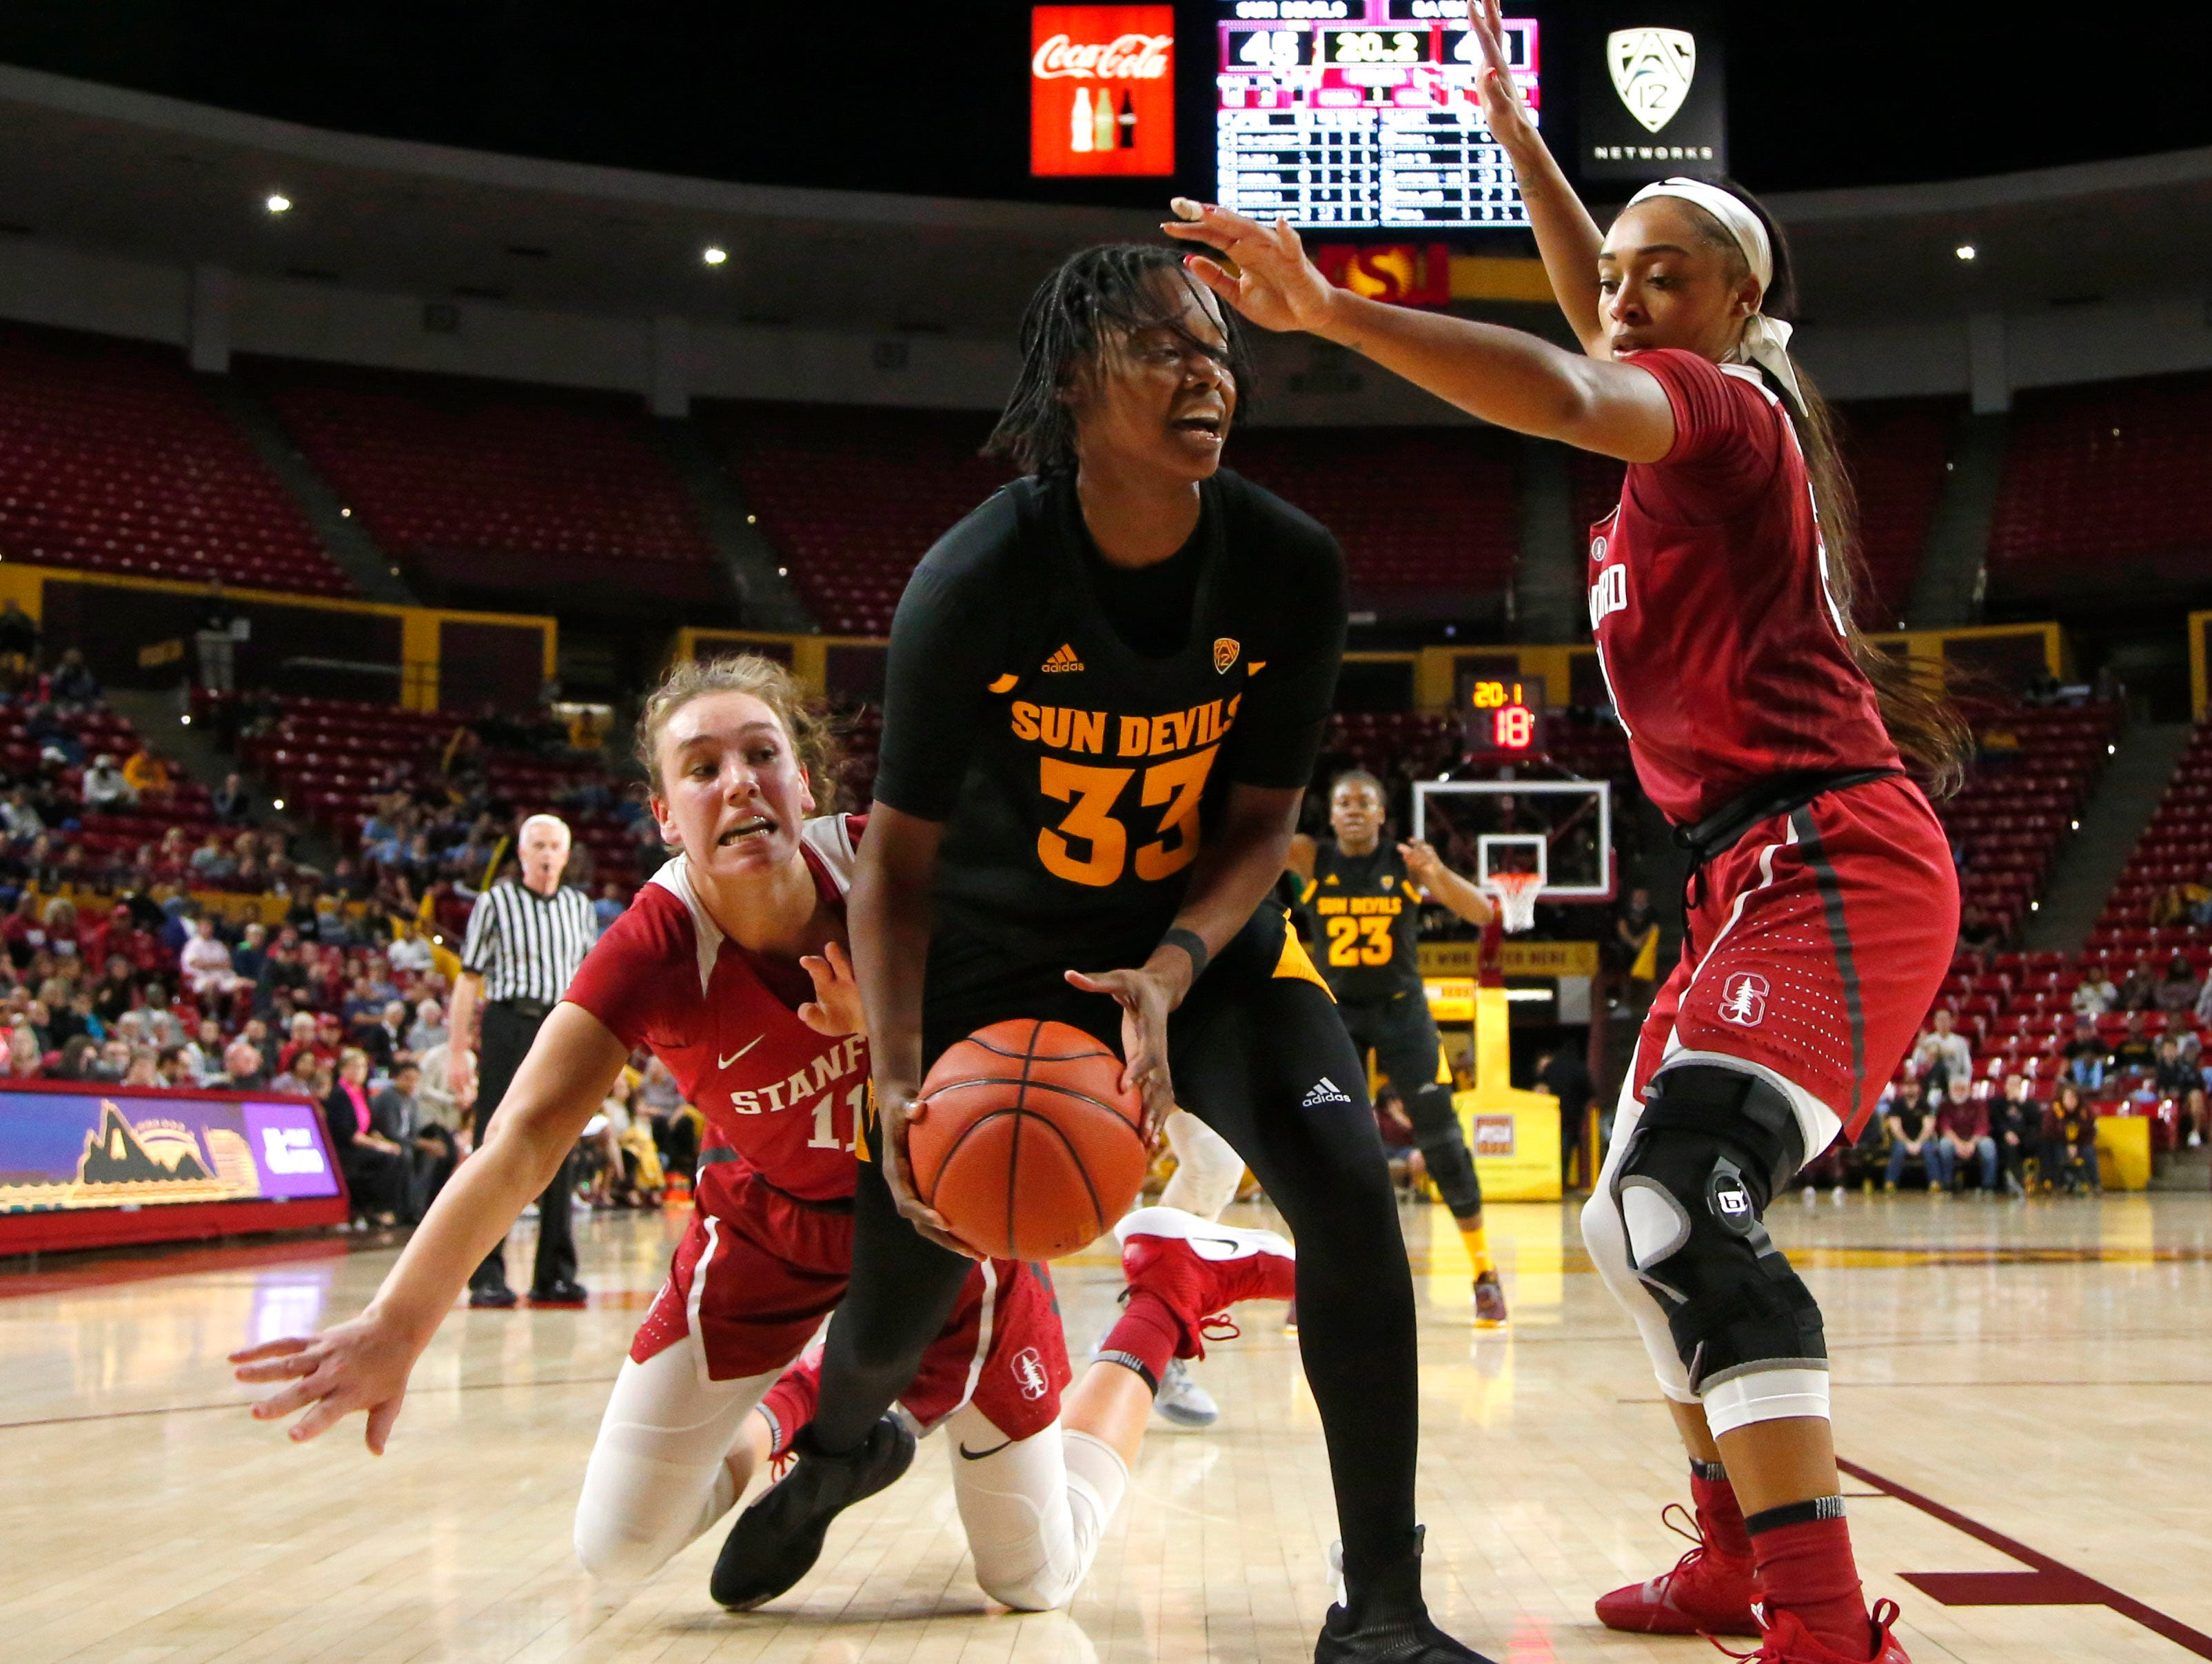 Stanford University Alanna Smith (11) and Dijonai Carrington (21), right, guard Arizona State University Charnea Johnson-Chapman (33) during a women's basketball game at Well Fargo Arena in Tempe on January 11.